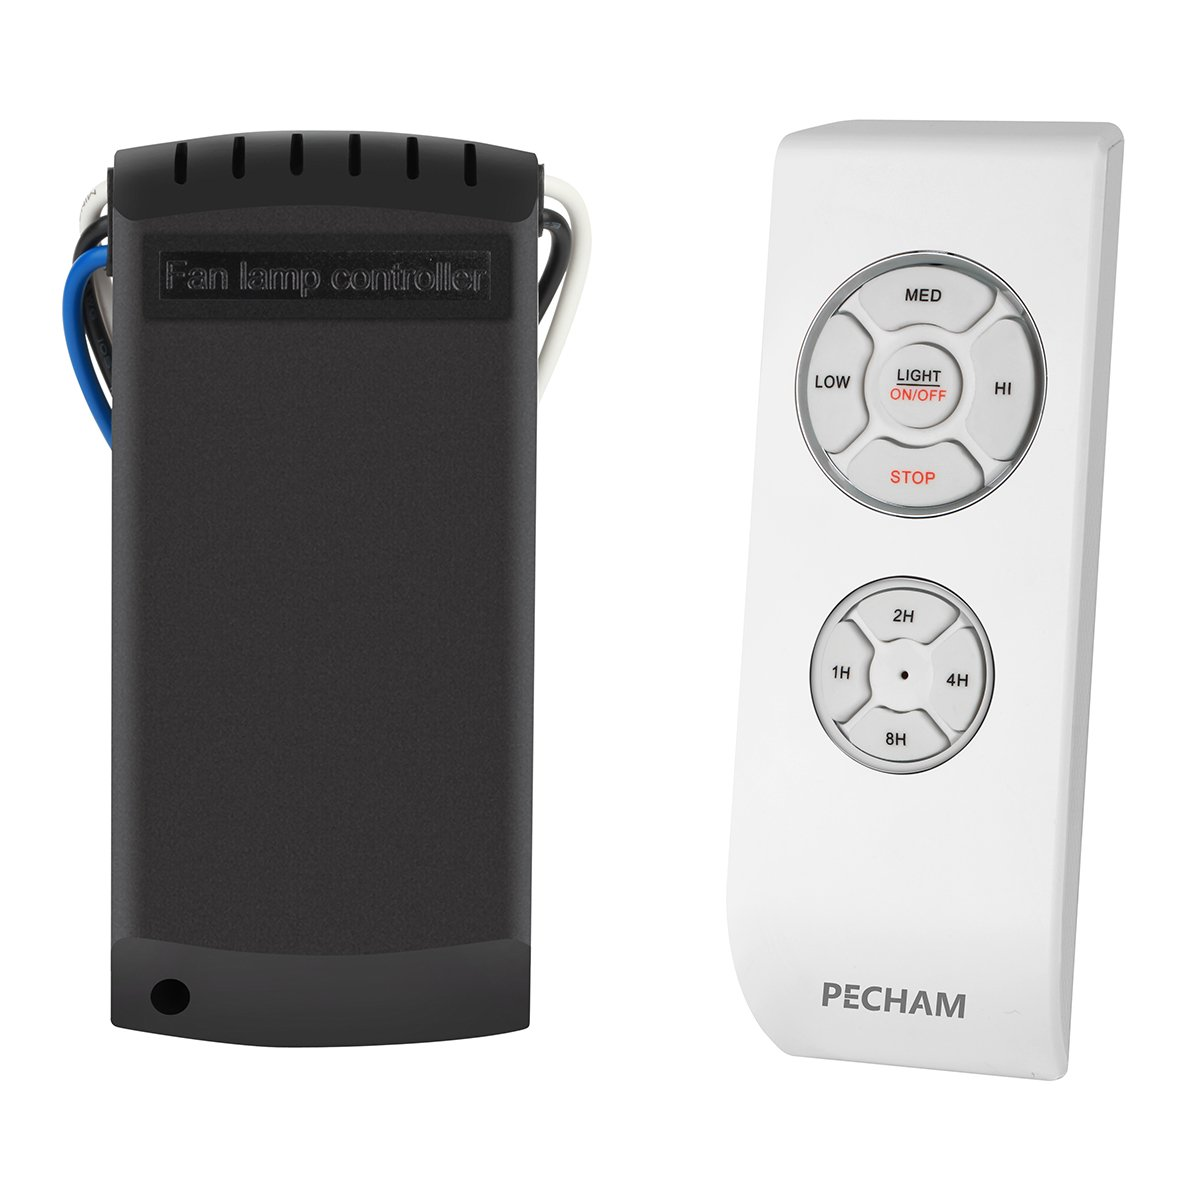 PECHAM FBA F2 Universal Lamp Kit and Timing Wireless Remote Control for Ceiling Fan, Scope of Application [Home/Office/ Hotel/The Club/Display Hall/Restaurant], 2